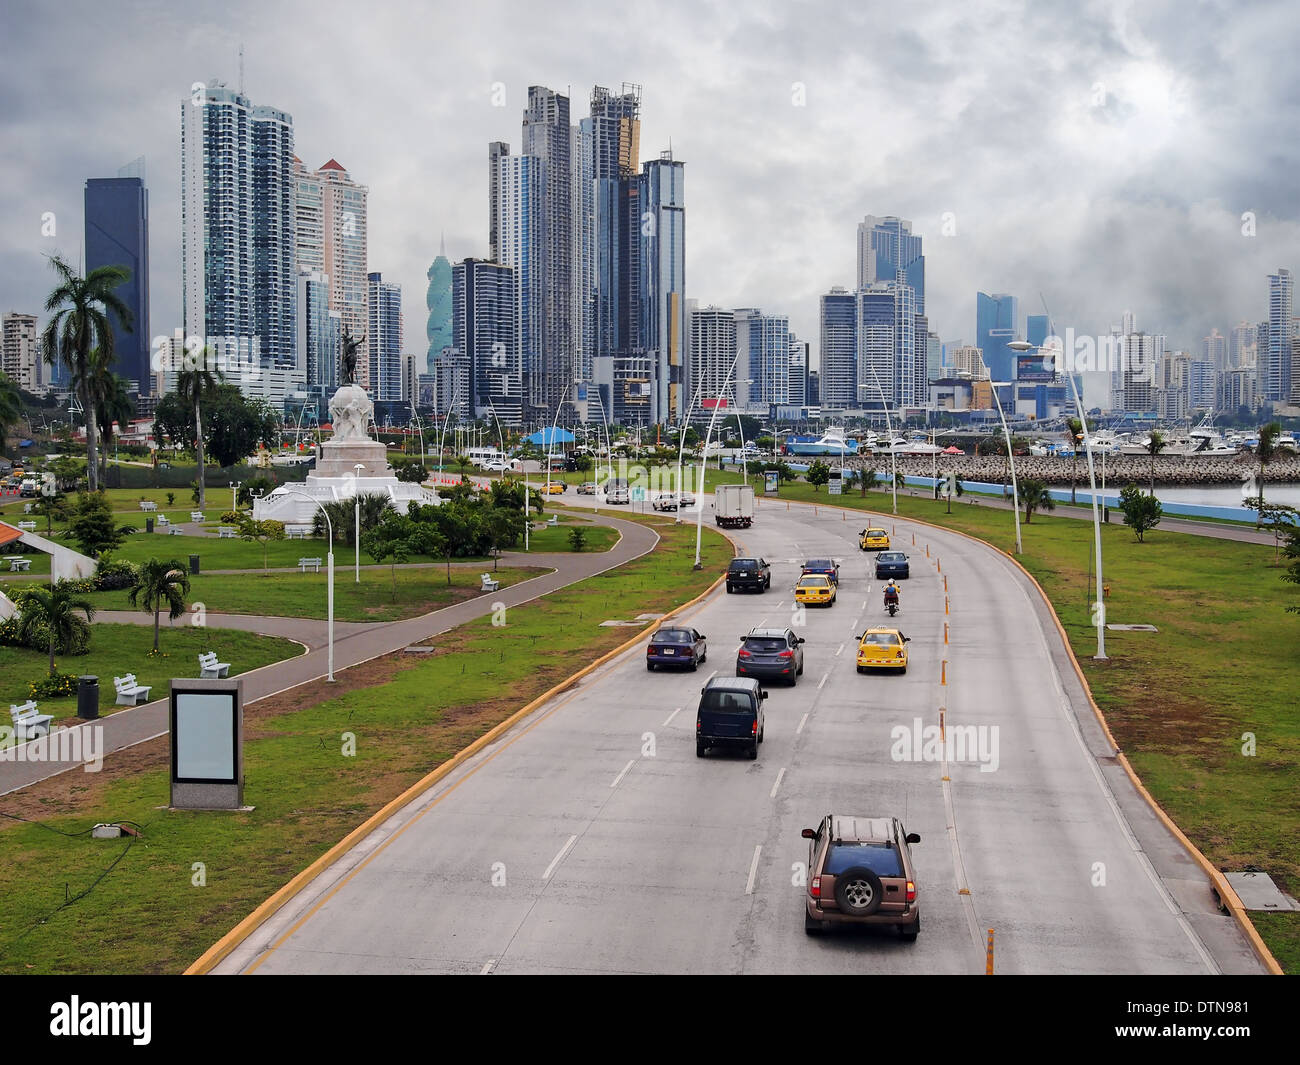 Highway and skyscraper buildings of business center in Panama City with cloudy sky, Panama, Central America - Stock Image